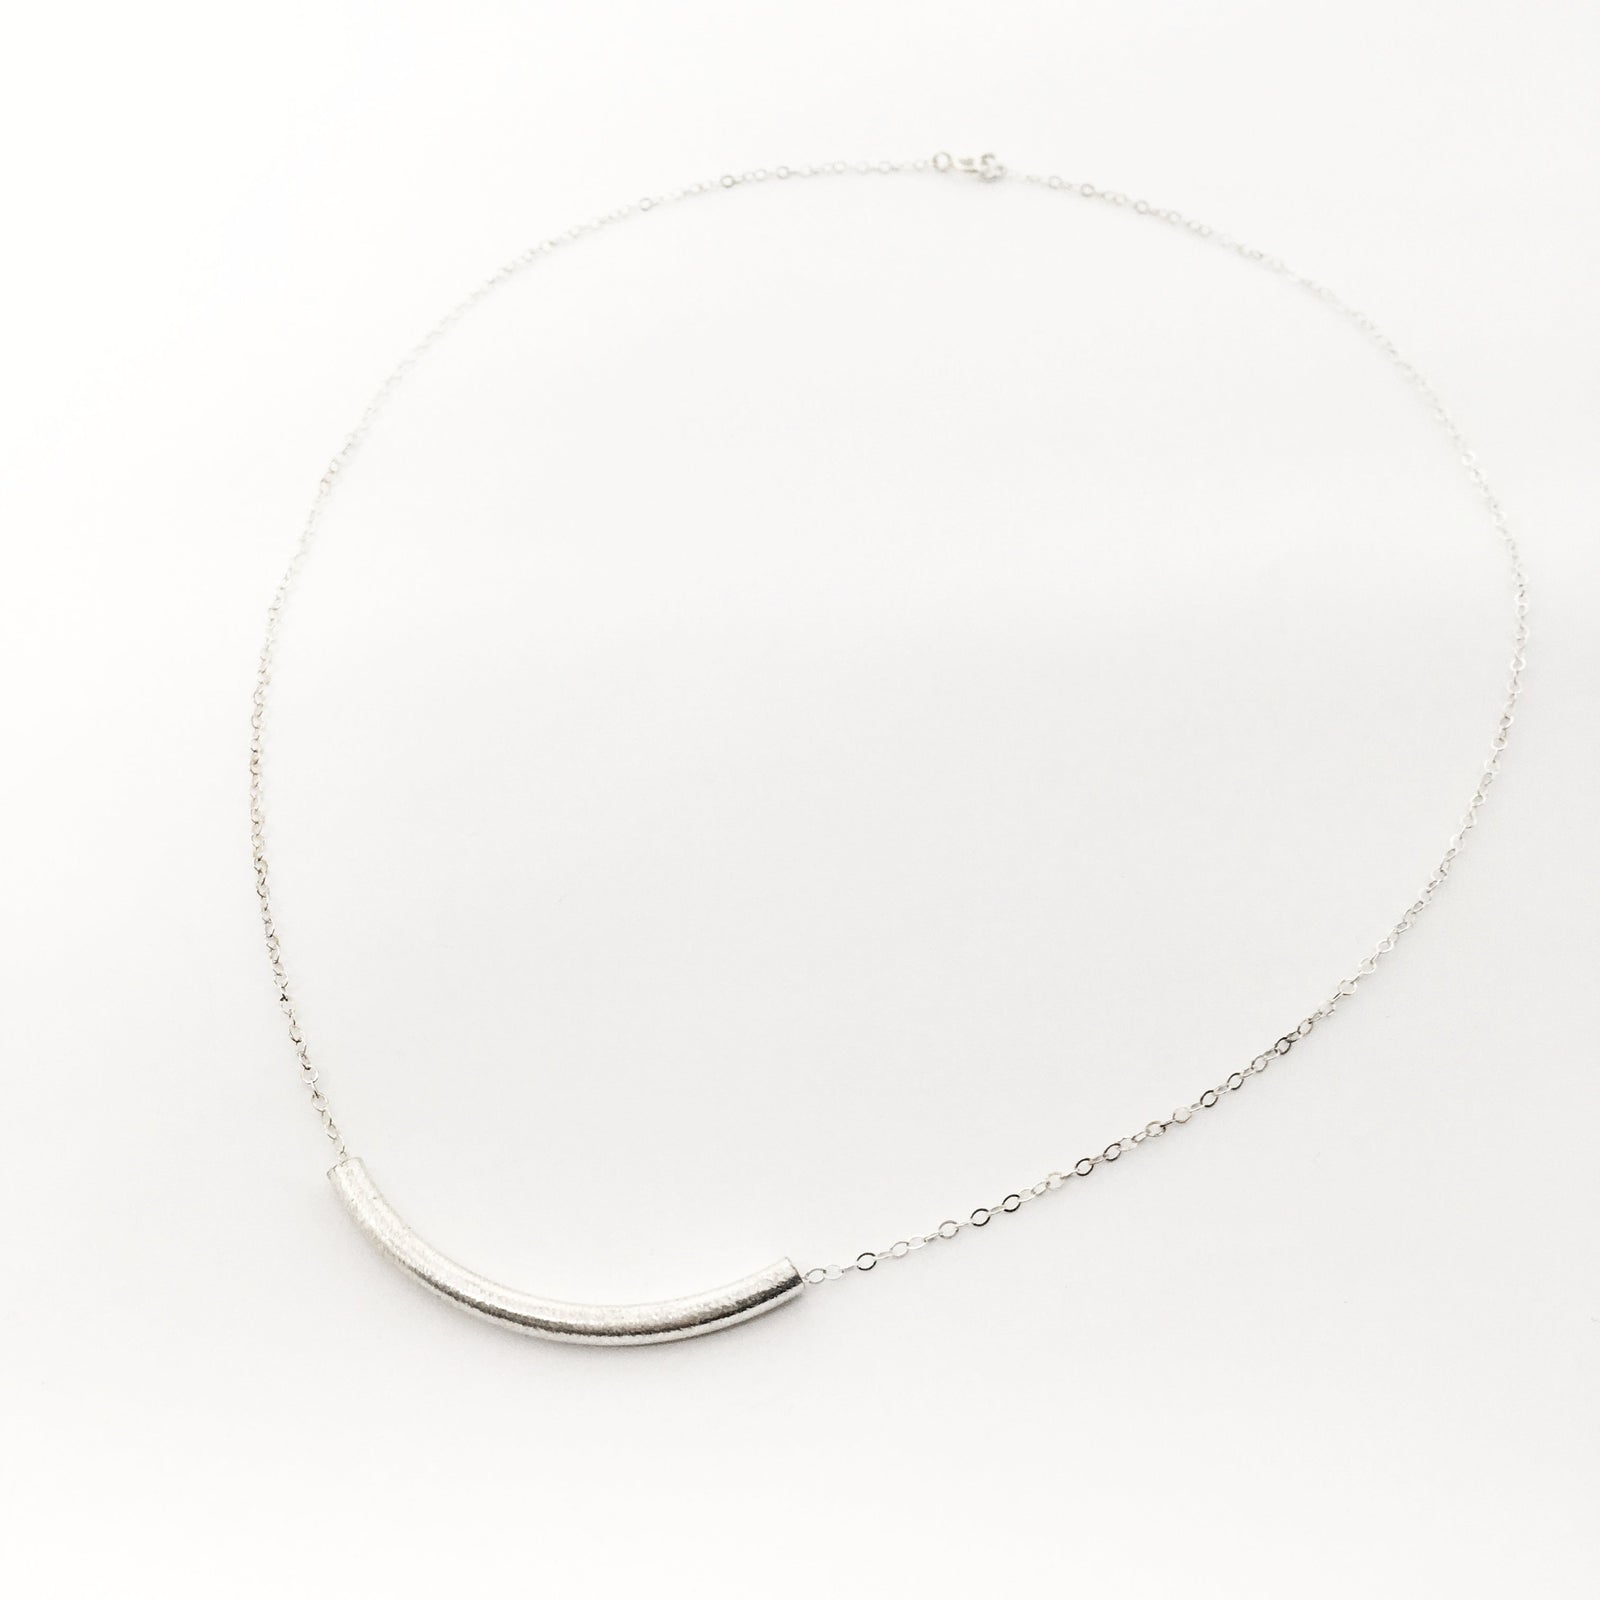 BRUSH CURVED BAR NECKLACE | STERLING SILVER